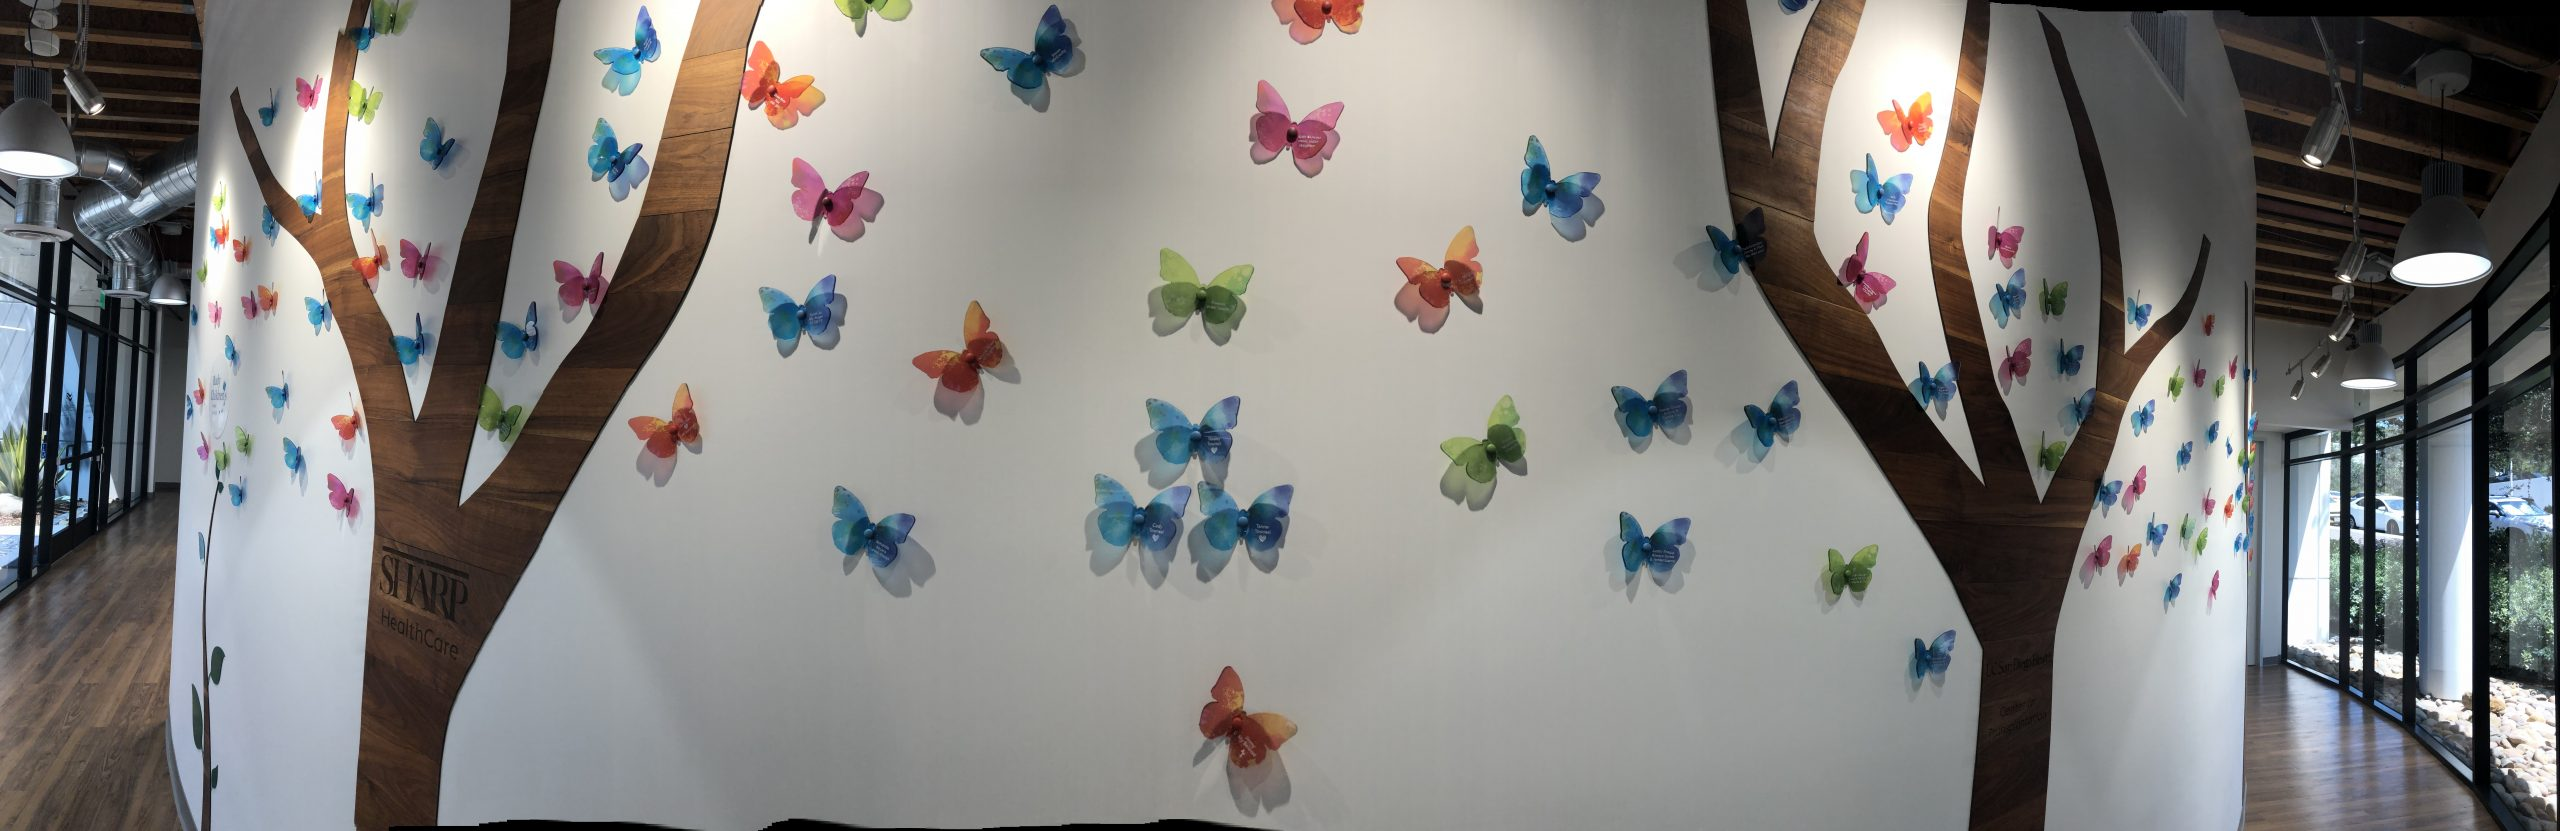 Hero Butterfly For Lifesharing's Memorial Wall